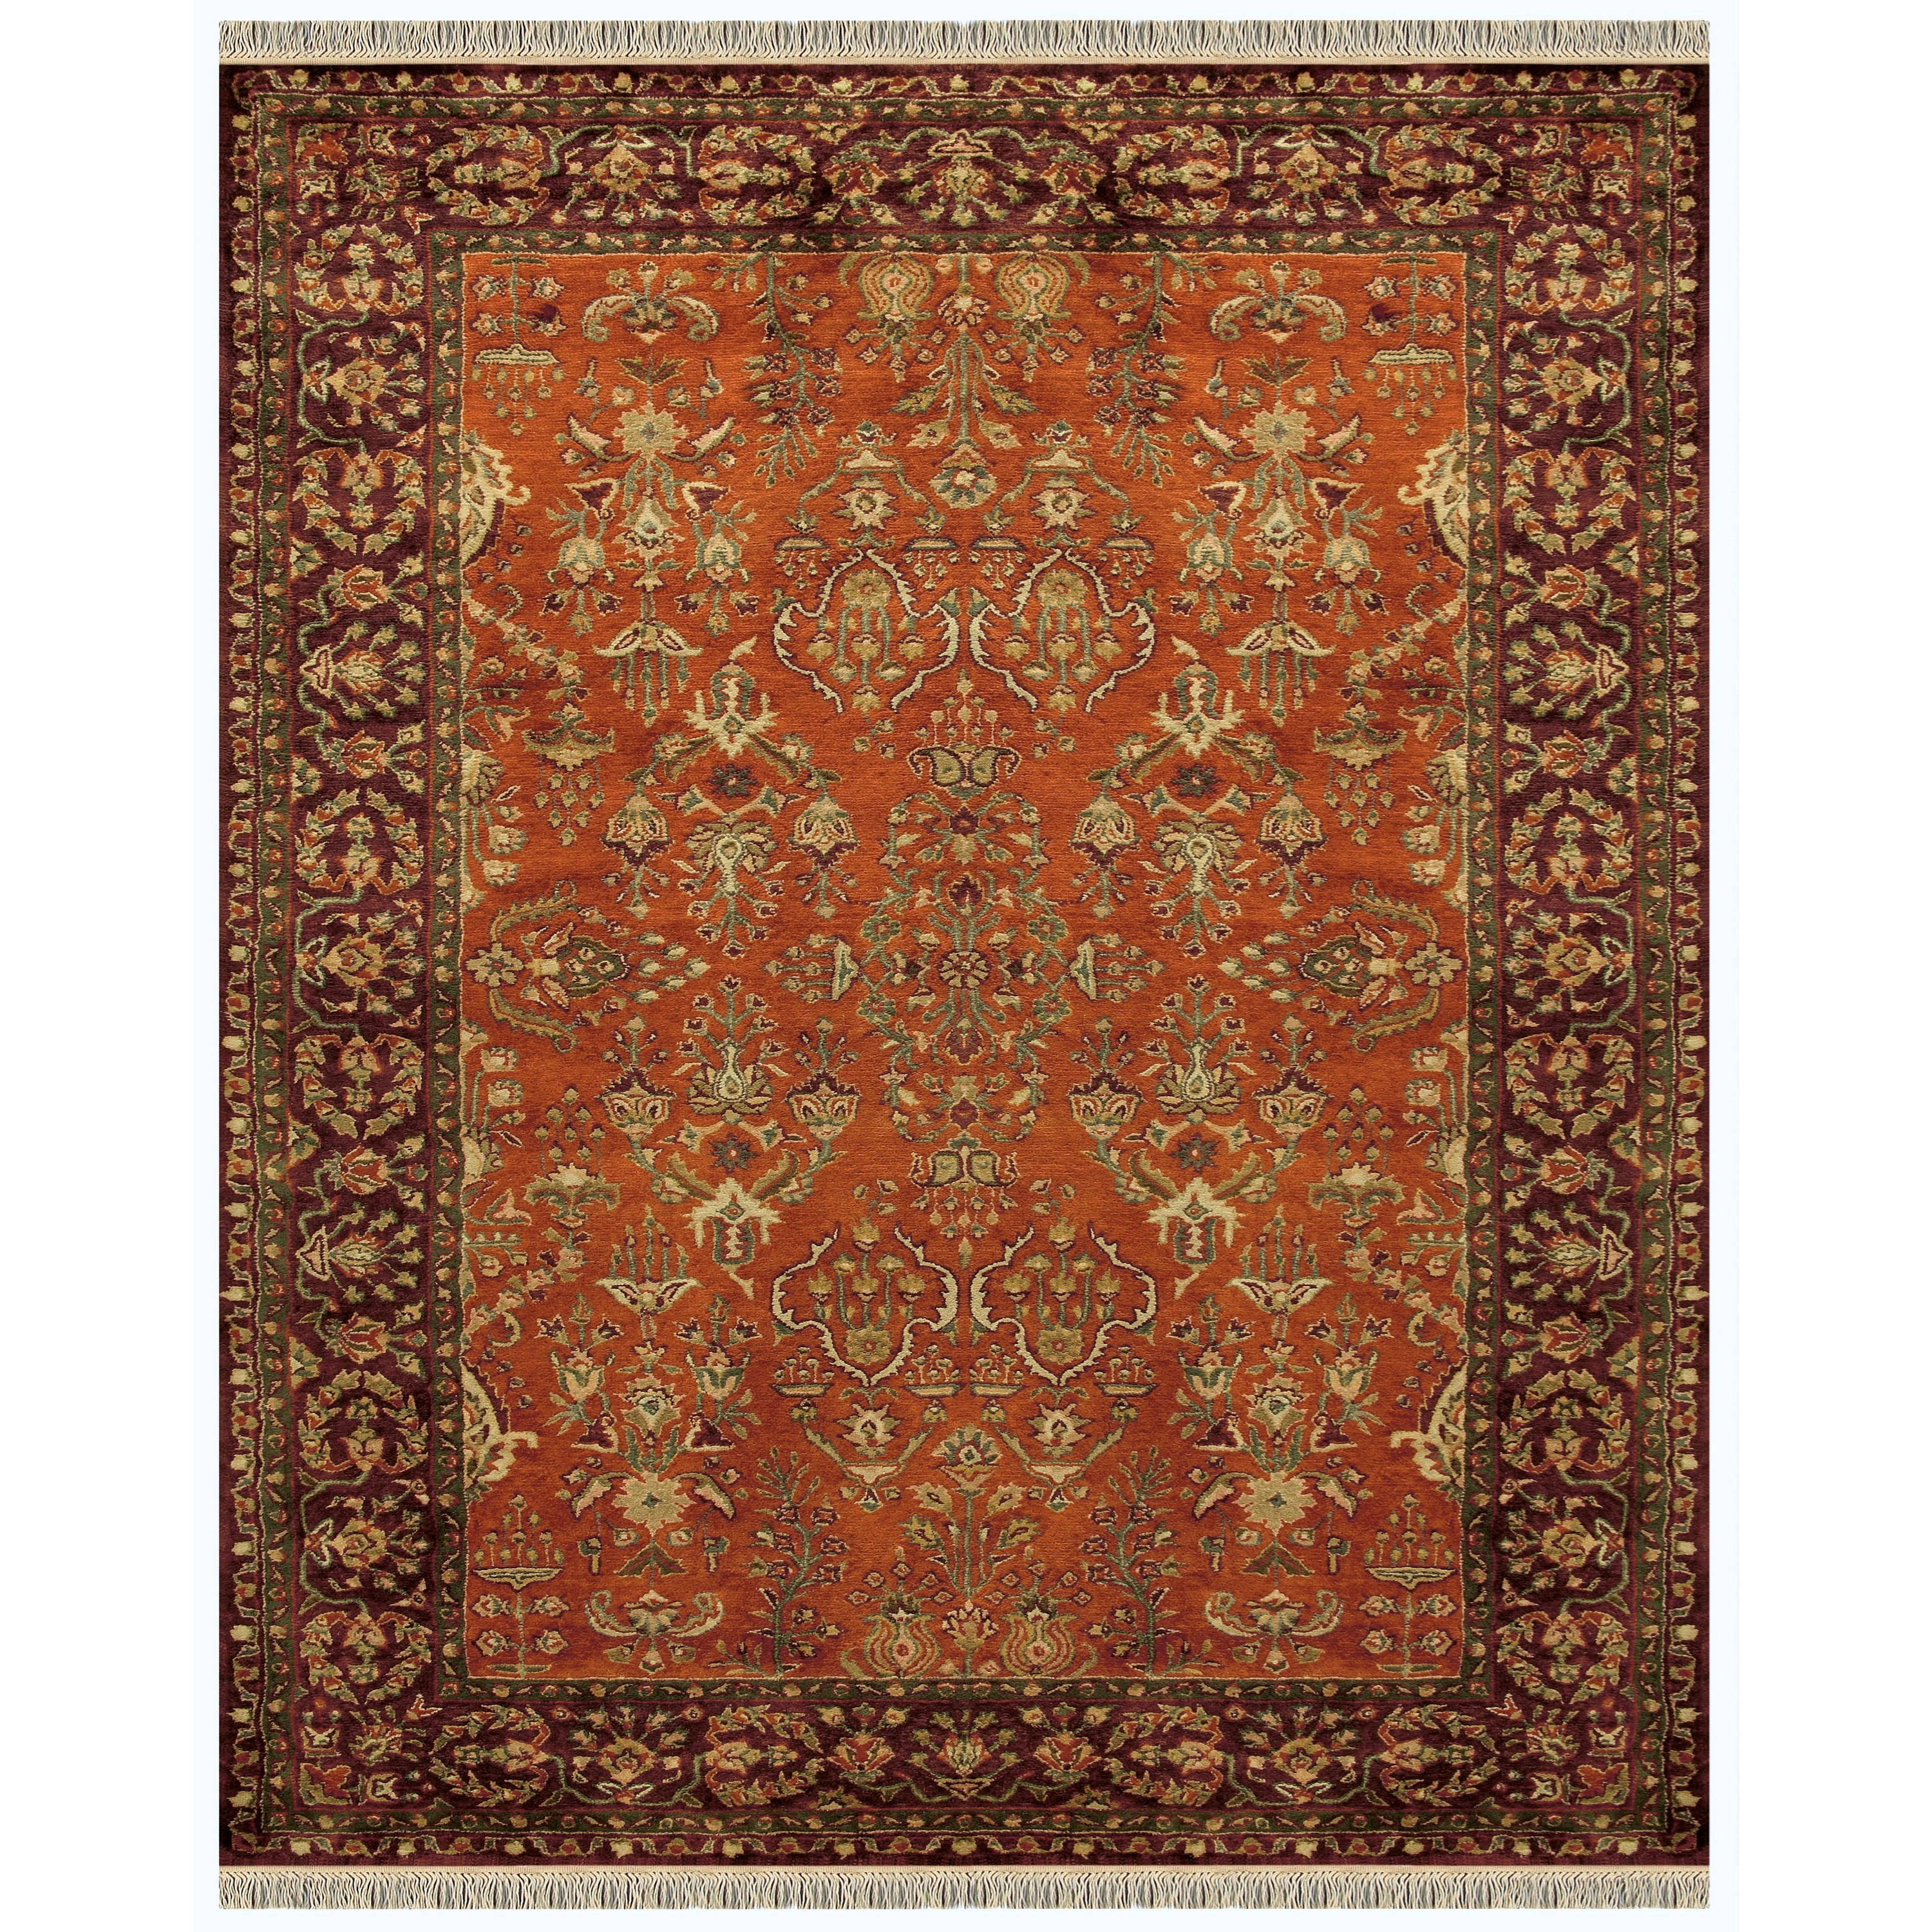 """Amore Cinnamon/Plum 9'-6"""" x 13'-6"""" Area Rug by Feizy Rugs at Sprintz Furniture"""